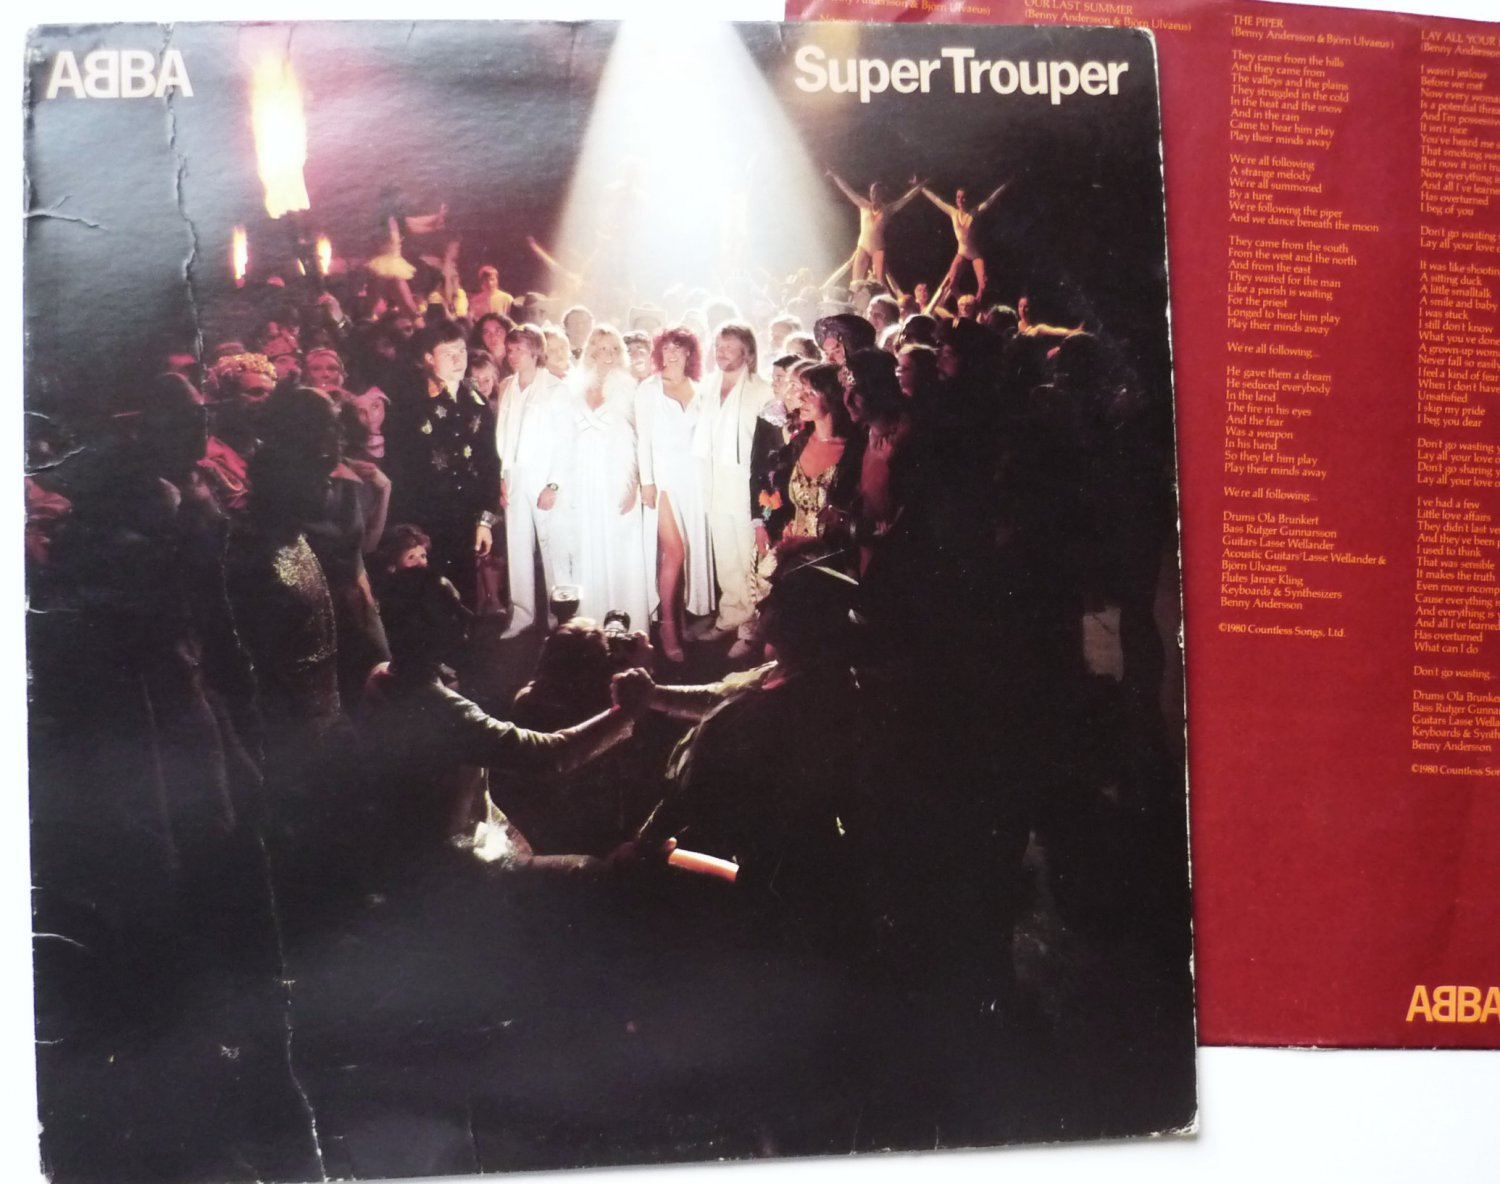 ABBA Super Trouper lp sd16023